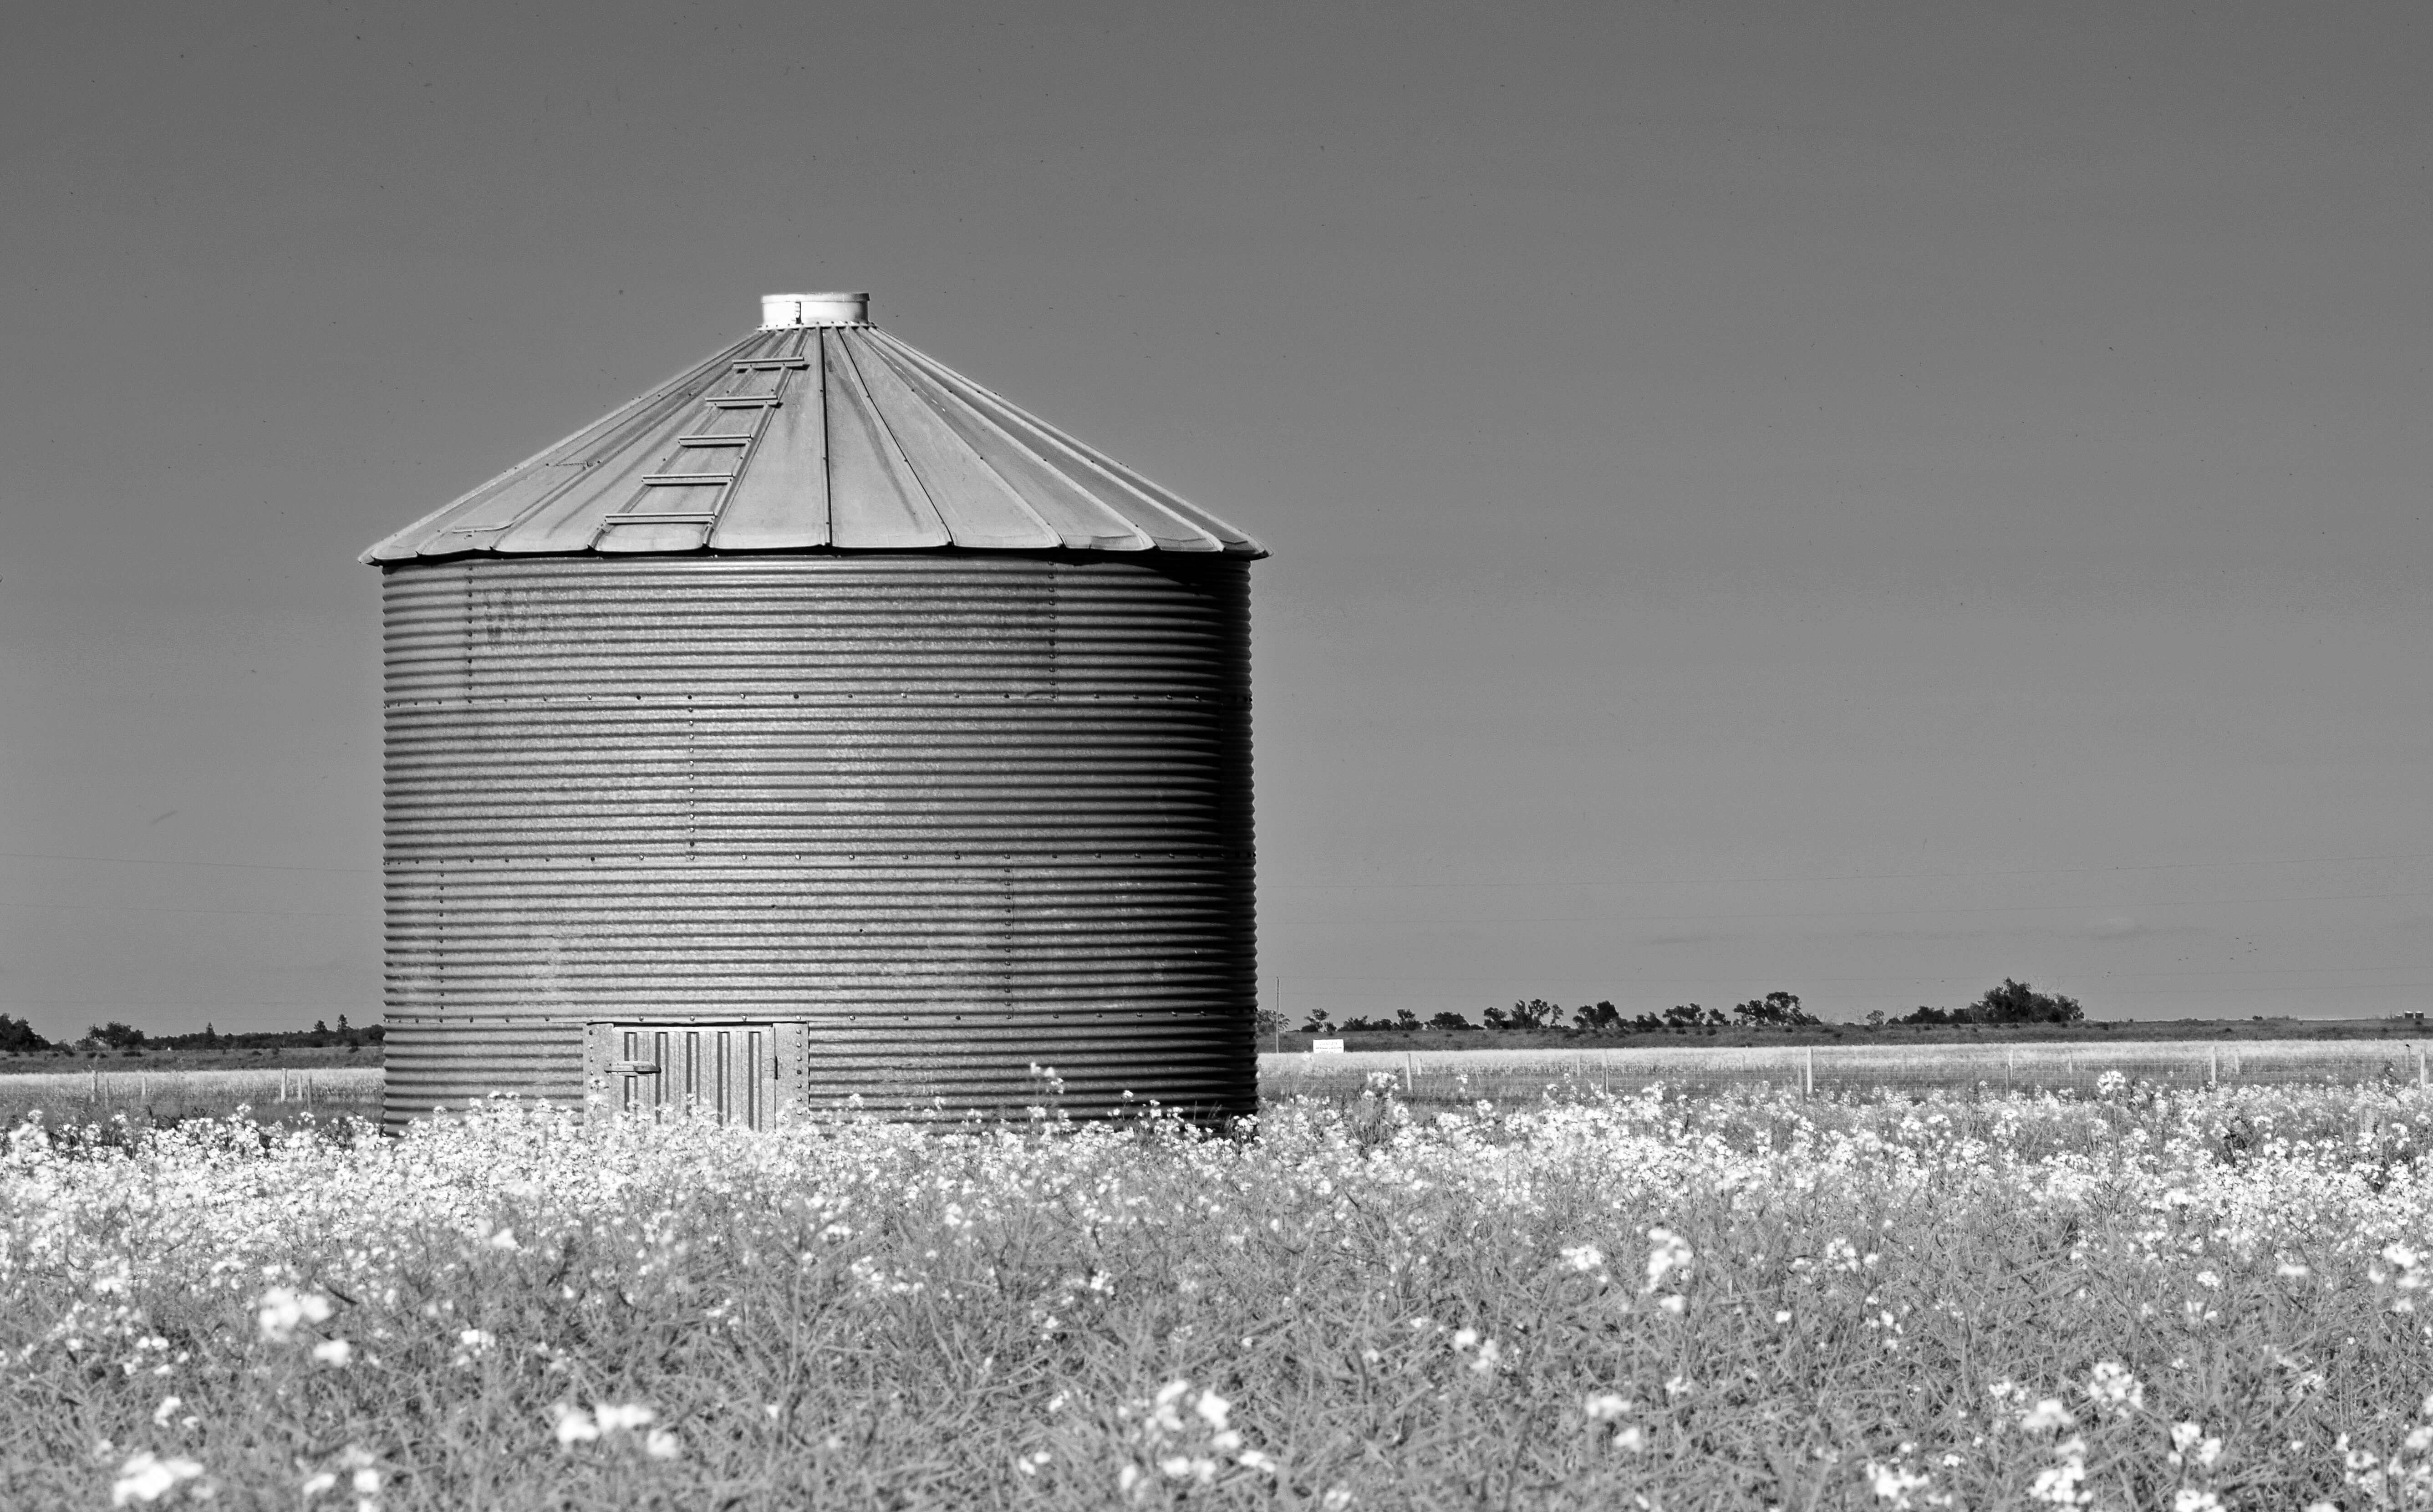 Engineering silo